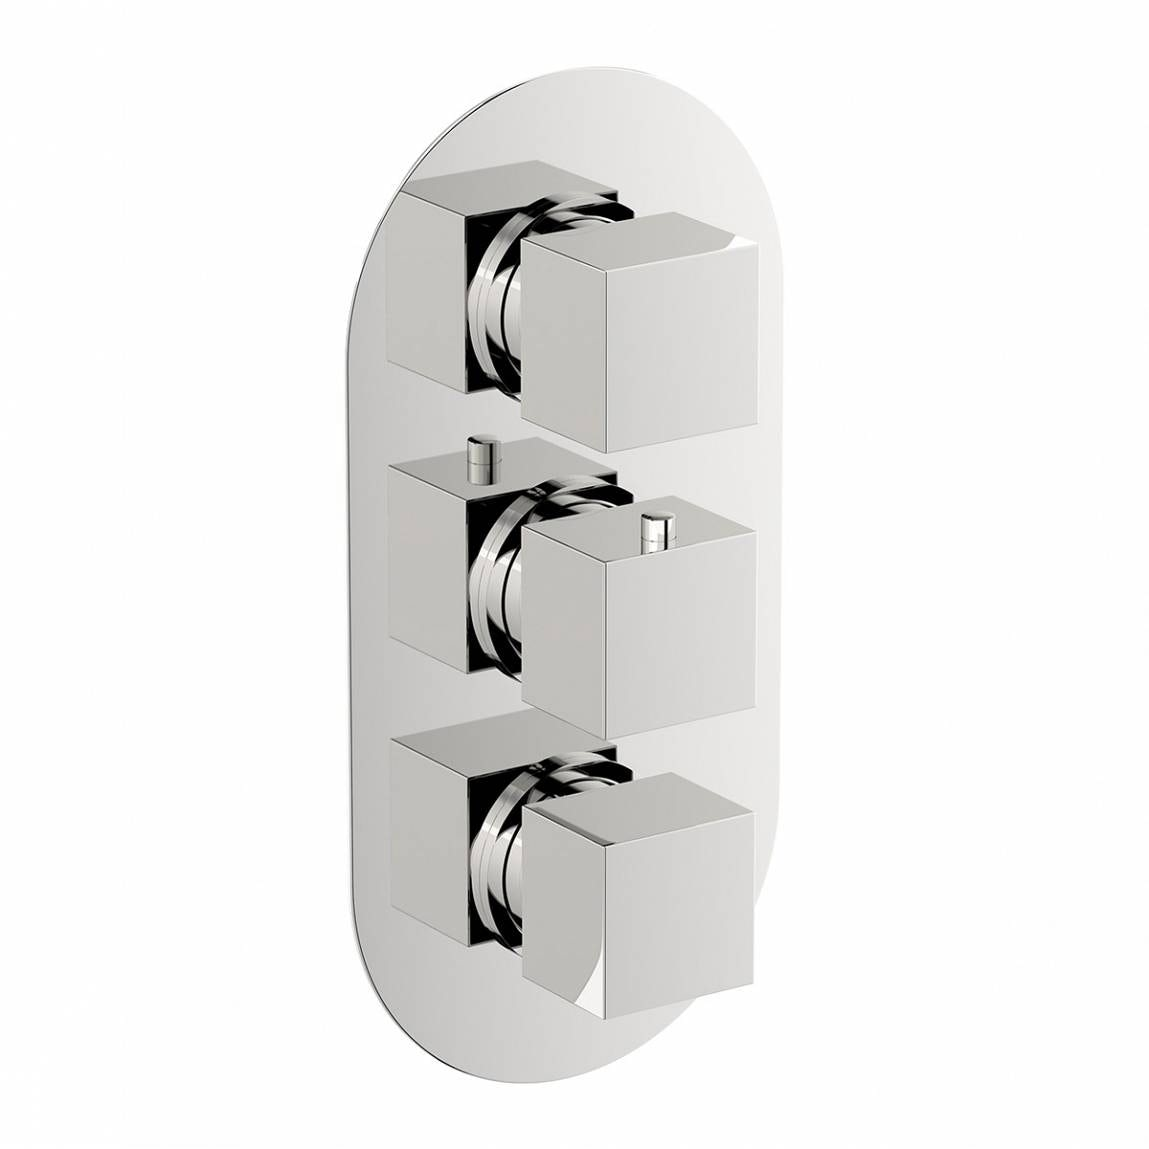 Mode Cubik oval triple thermostatic shower valve